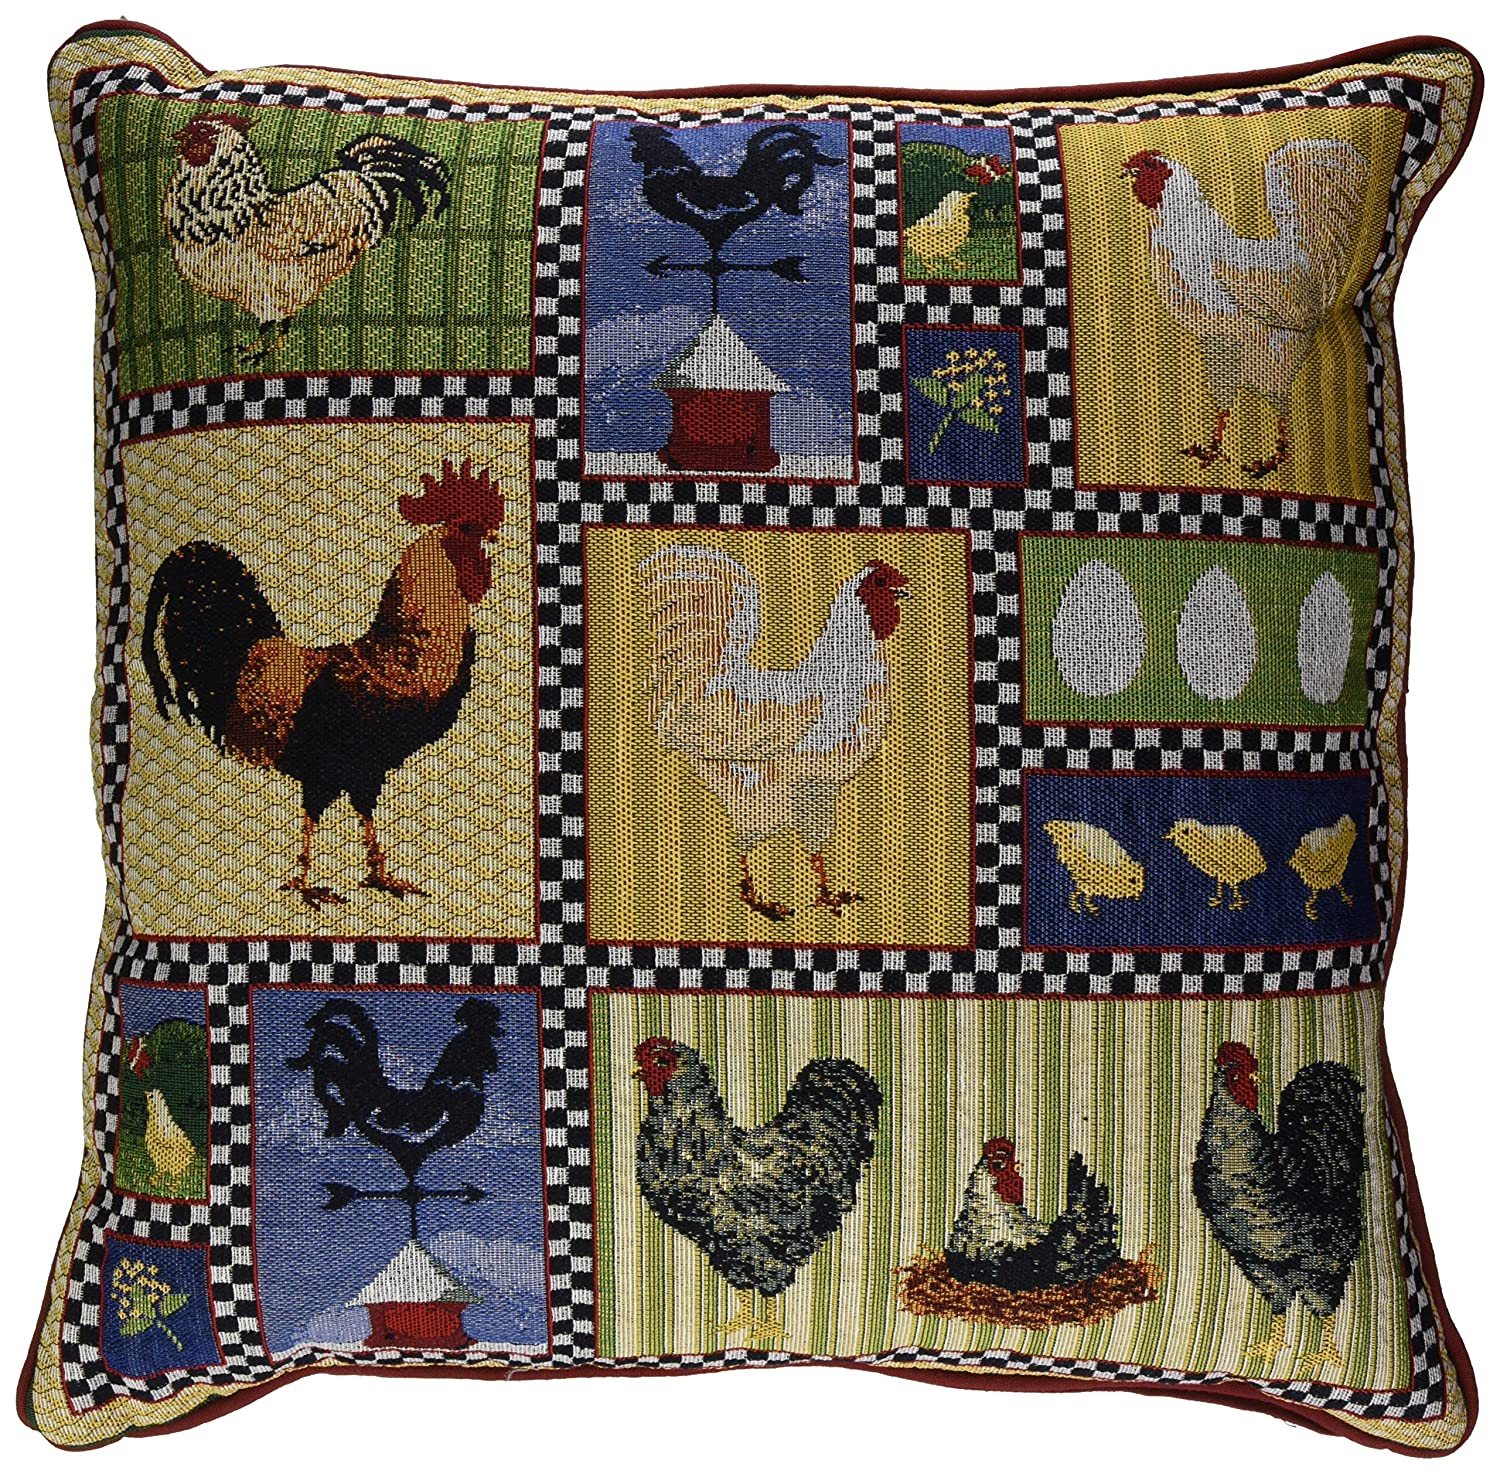 Genial Amazon.com: Park B. Smith Roosters And Chickens 18 By 18 Inch Tapestry  Decorative Pillow: Home U0026 Kitchen